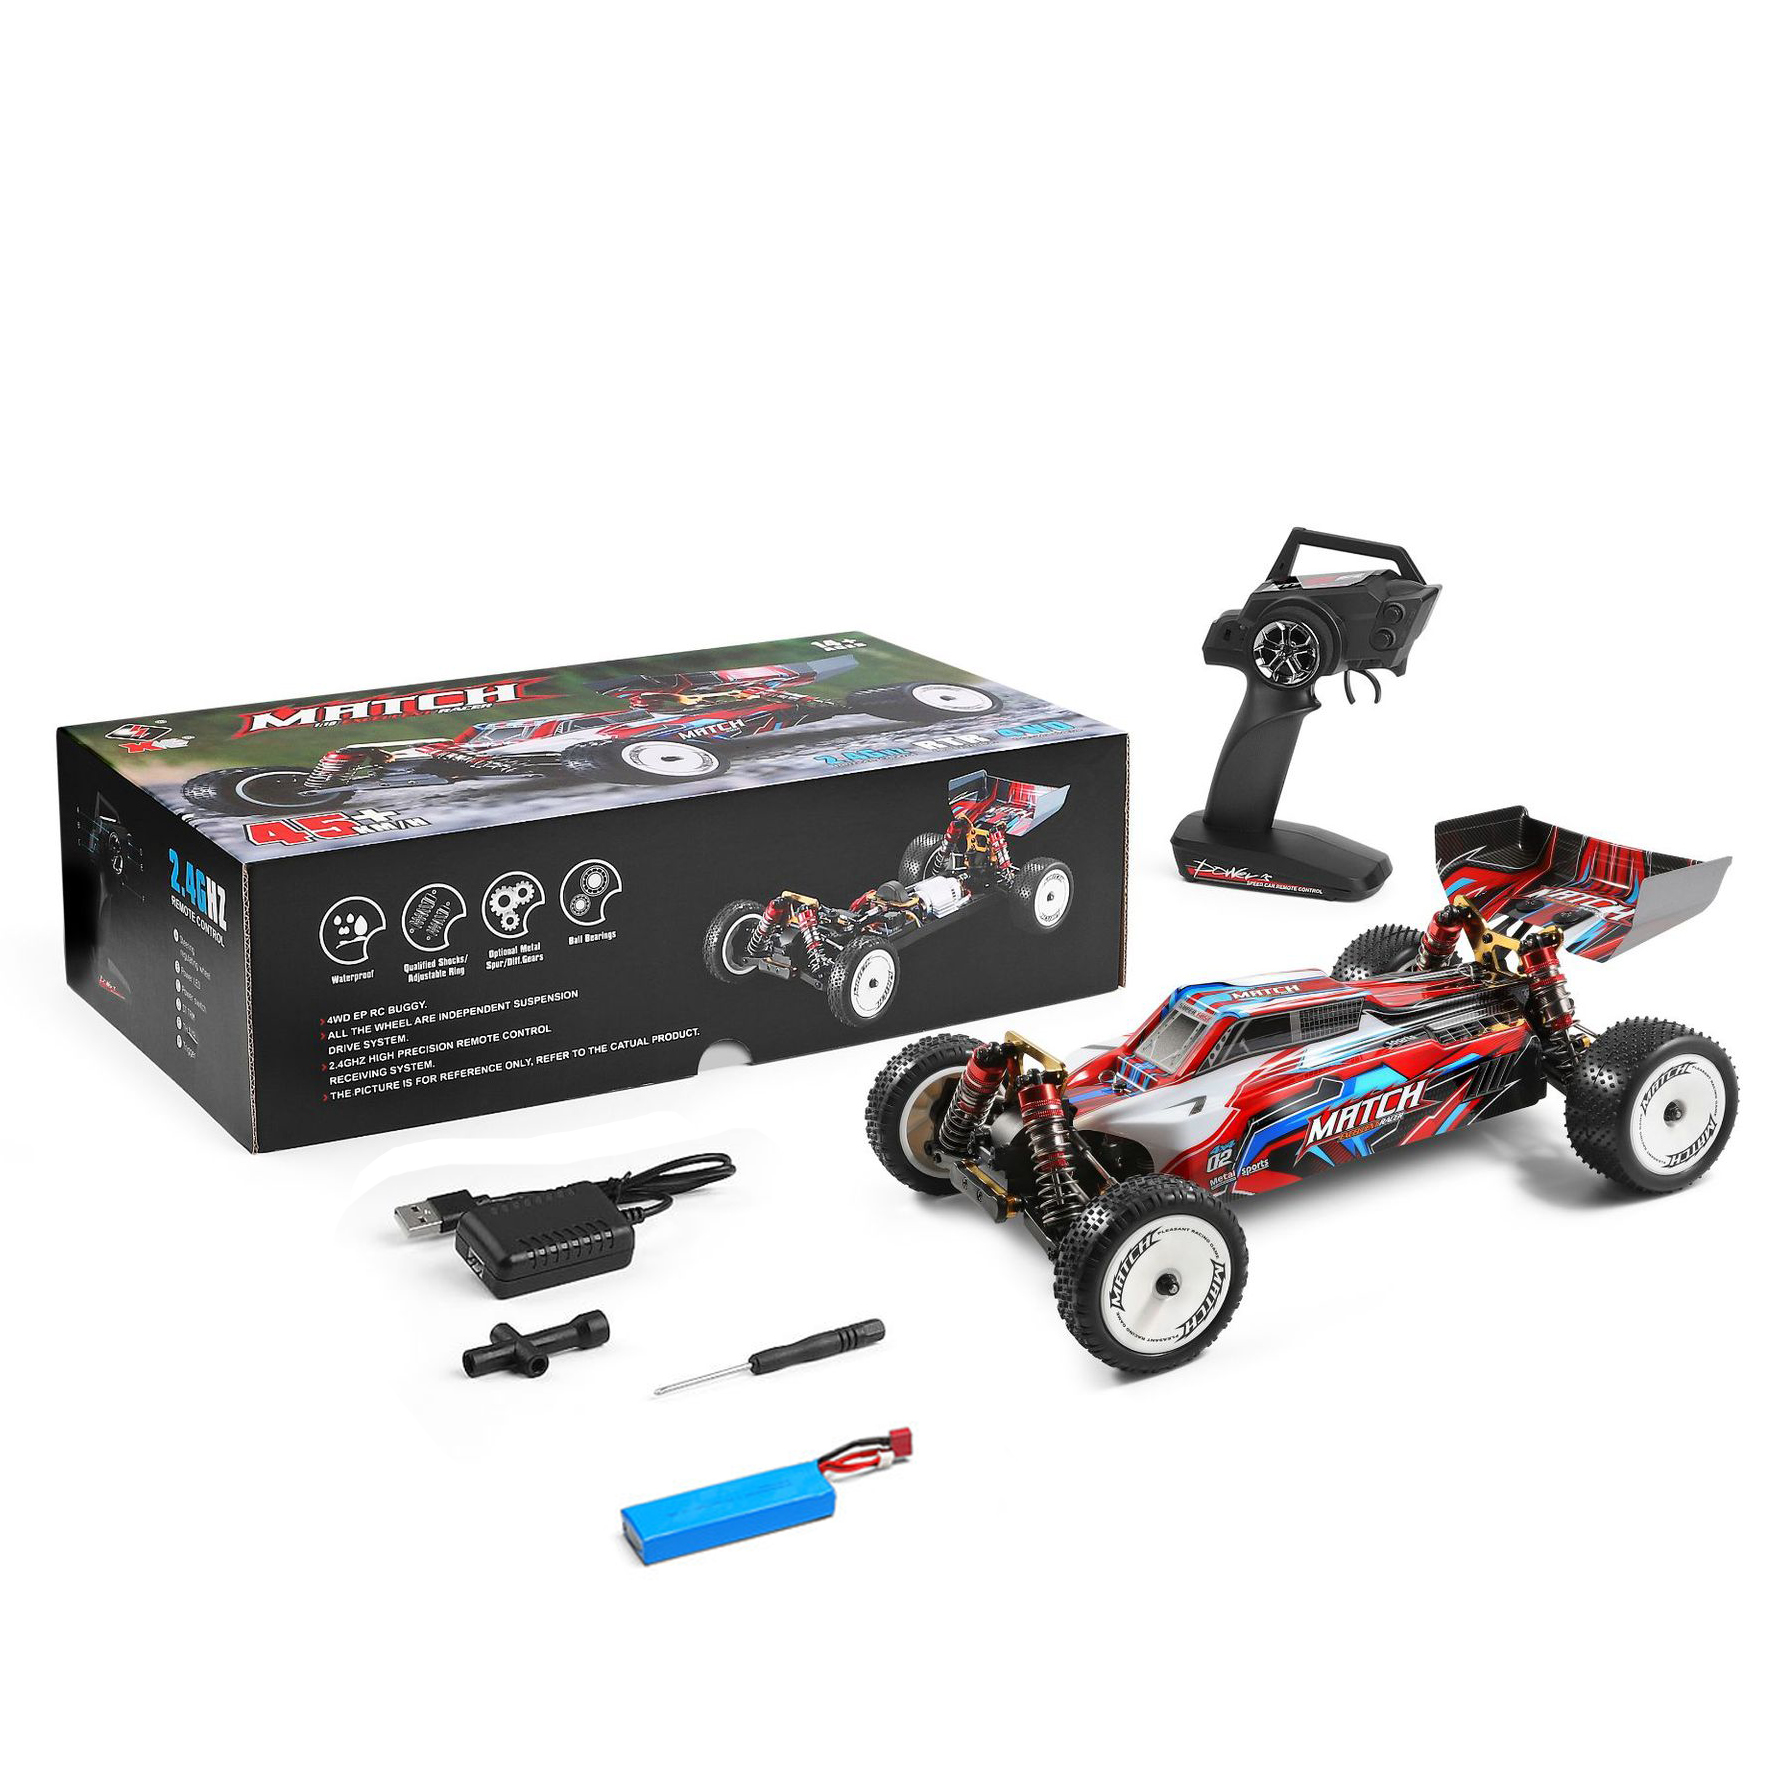 104001  1/10  Rc  Car 2.4g High Speed Drift Off-road 4wd Car Competitive Vehicle Racing Car Toys For Boys 104001